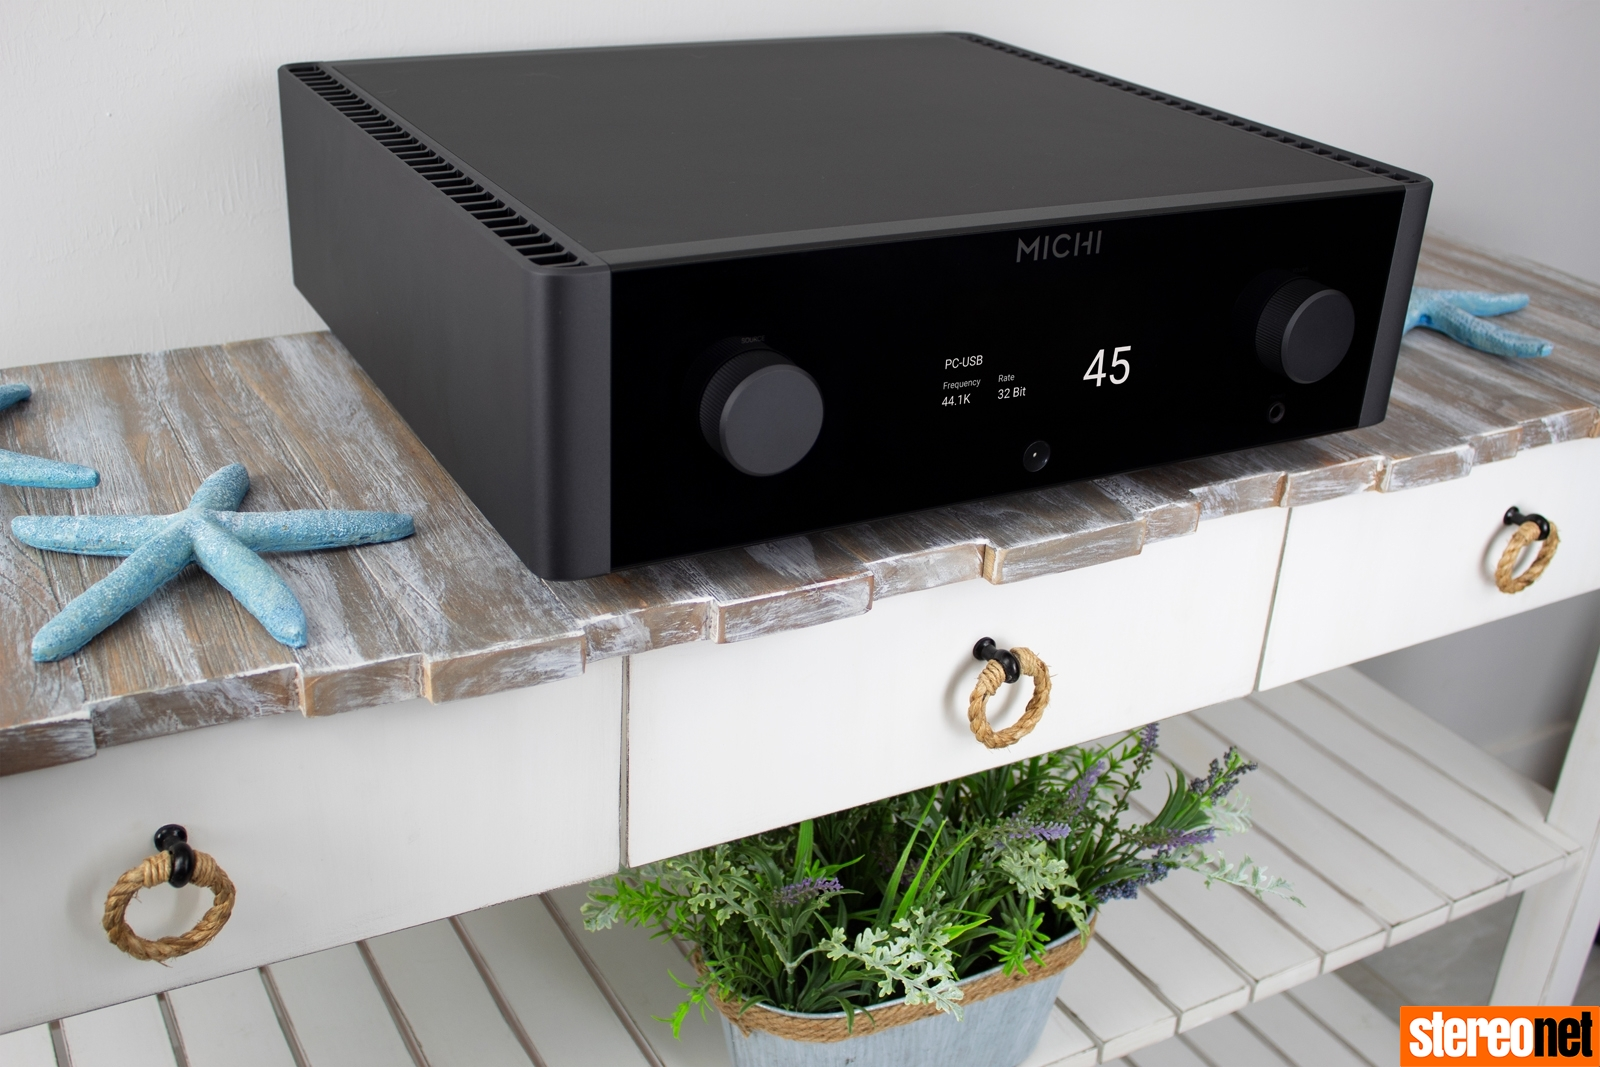 Rotel Michi X3 X5 integrated amplifier